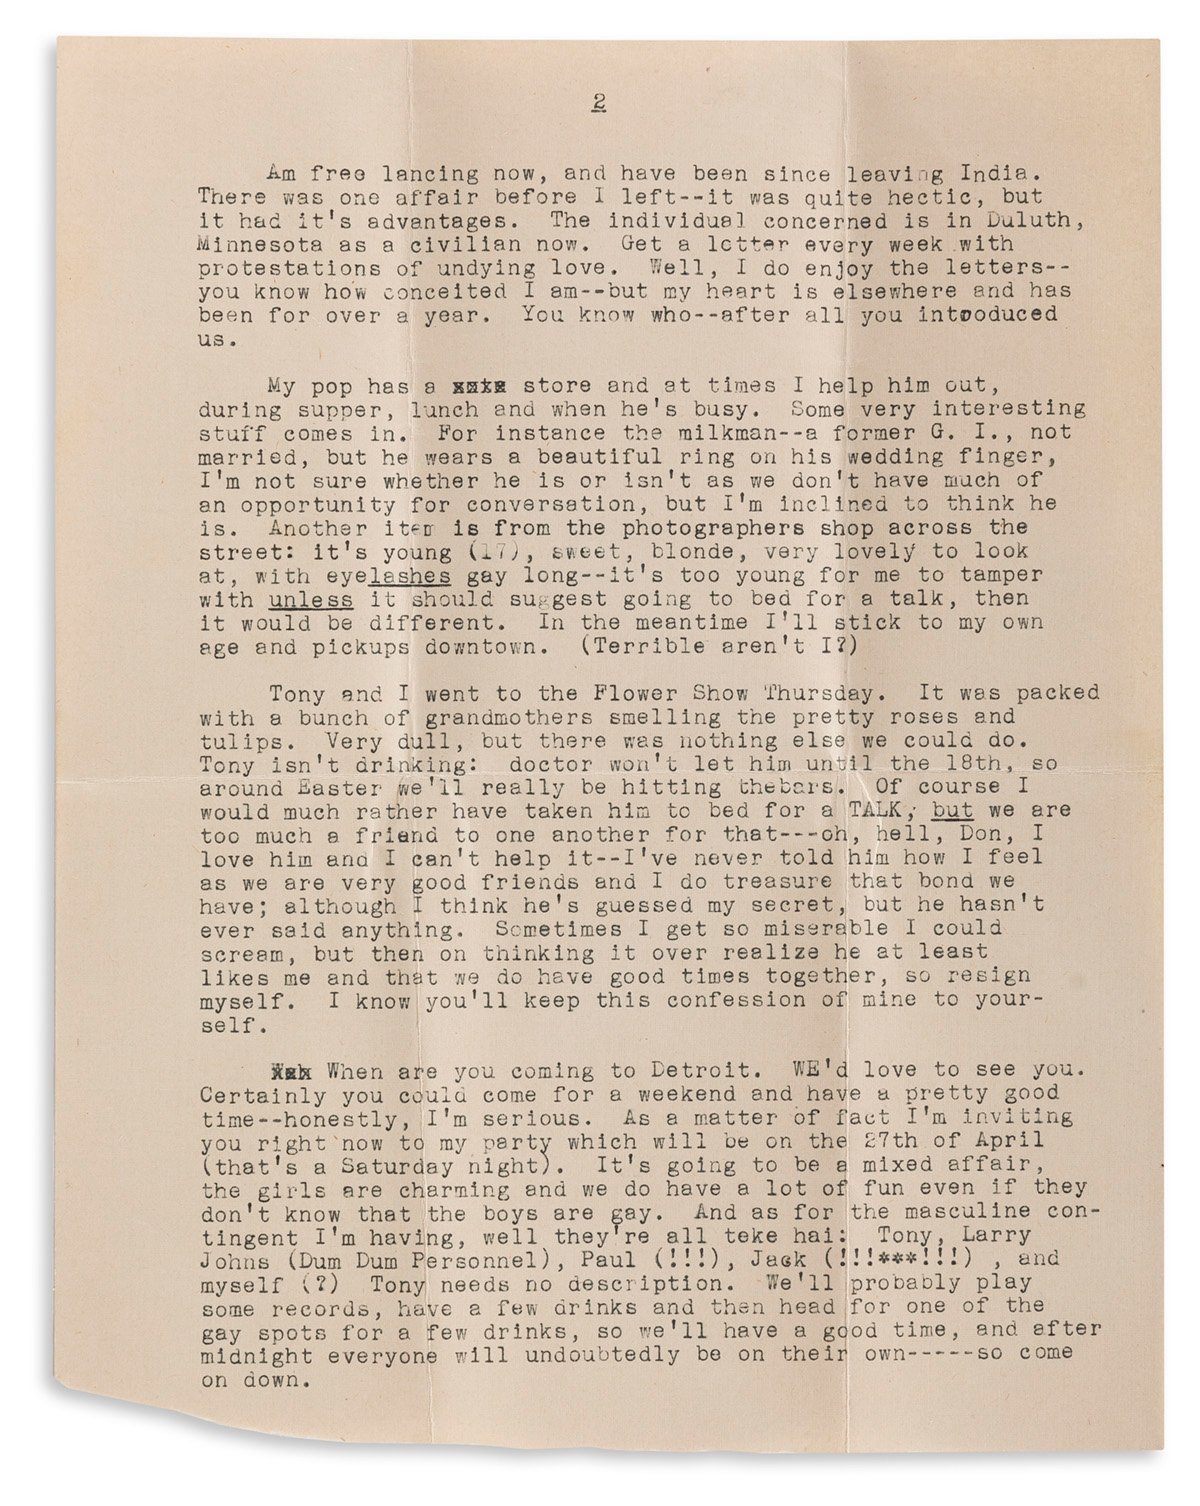 Papers of a gay Wisconsin man, including letters from fellow gay World War Two veterans across the country.